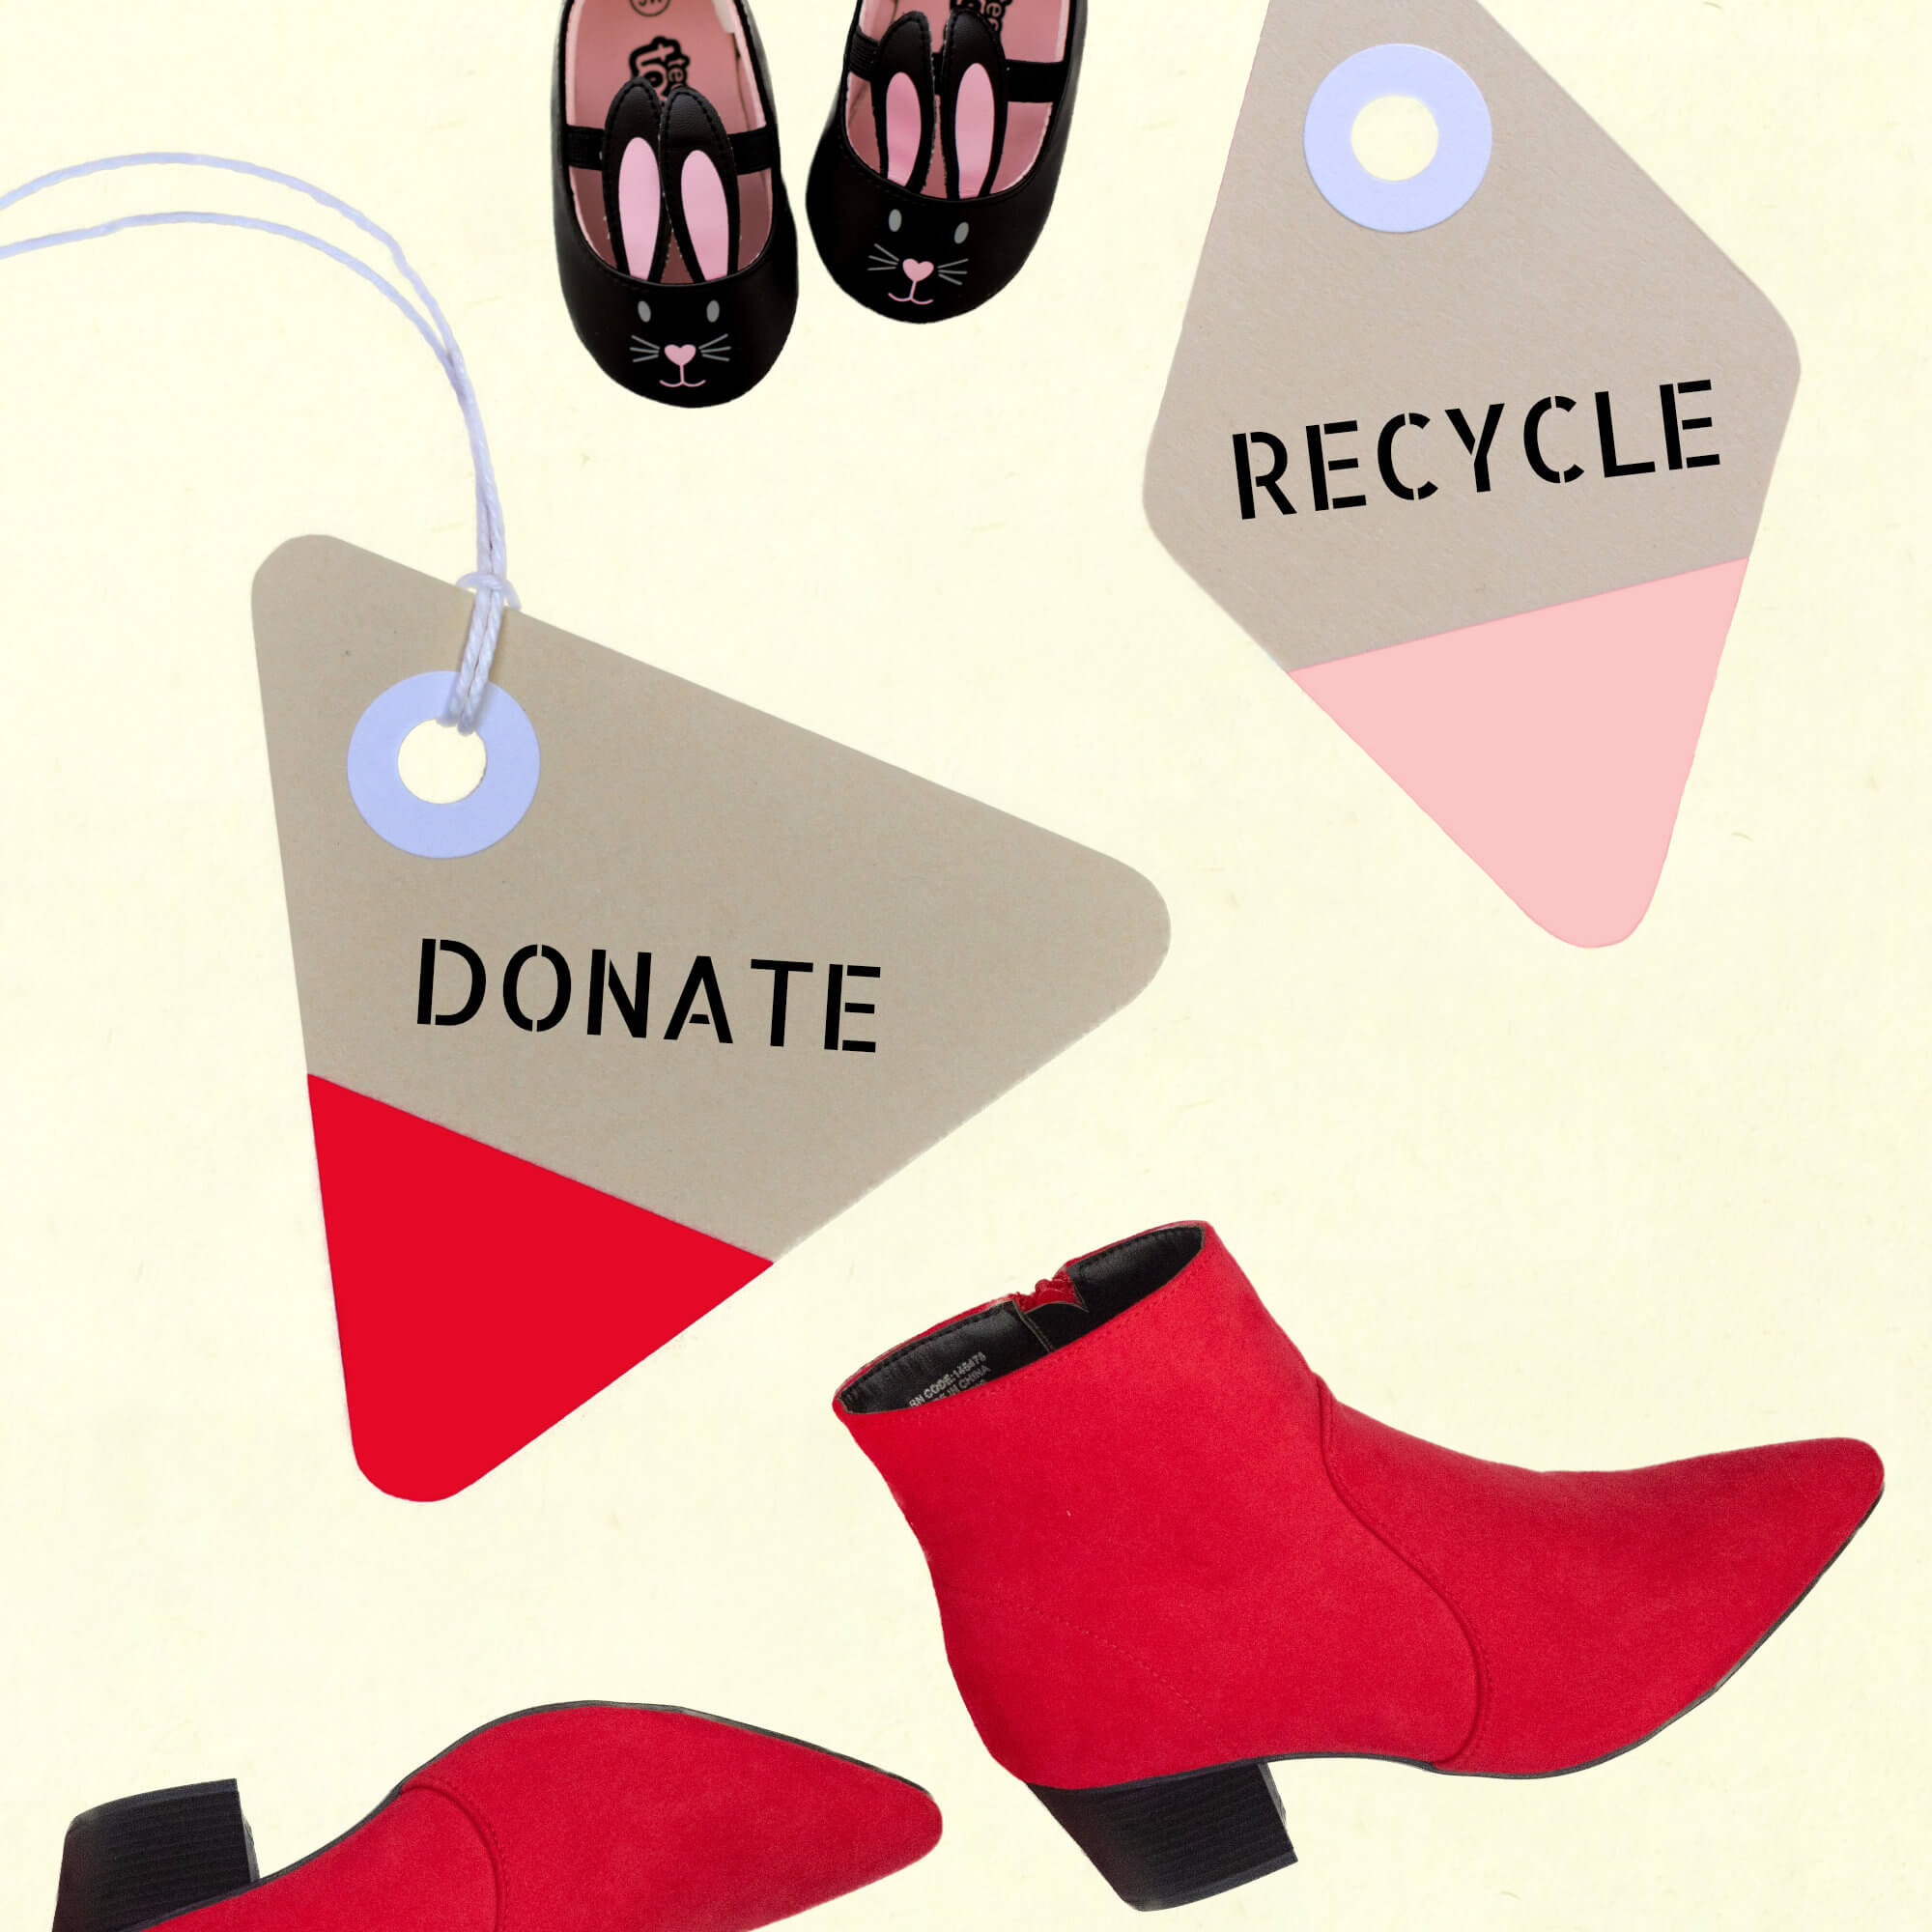 KonMari Method of Tidying. Responsible Discarding Represented By 'Donate', 'Recycle' Labels With Red Boots & Bunny Slippers